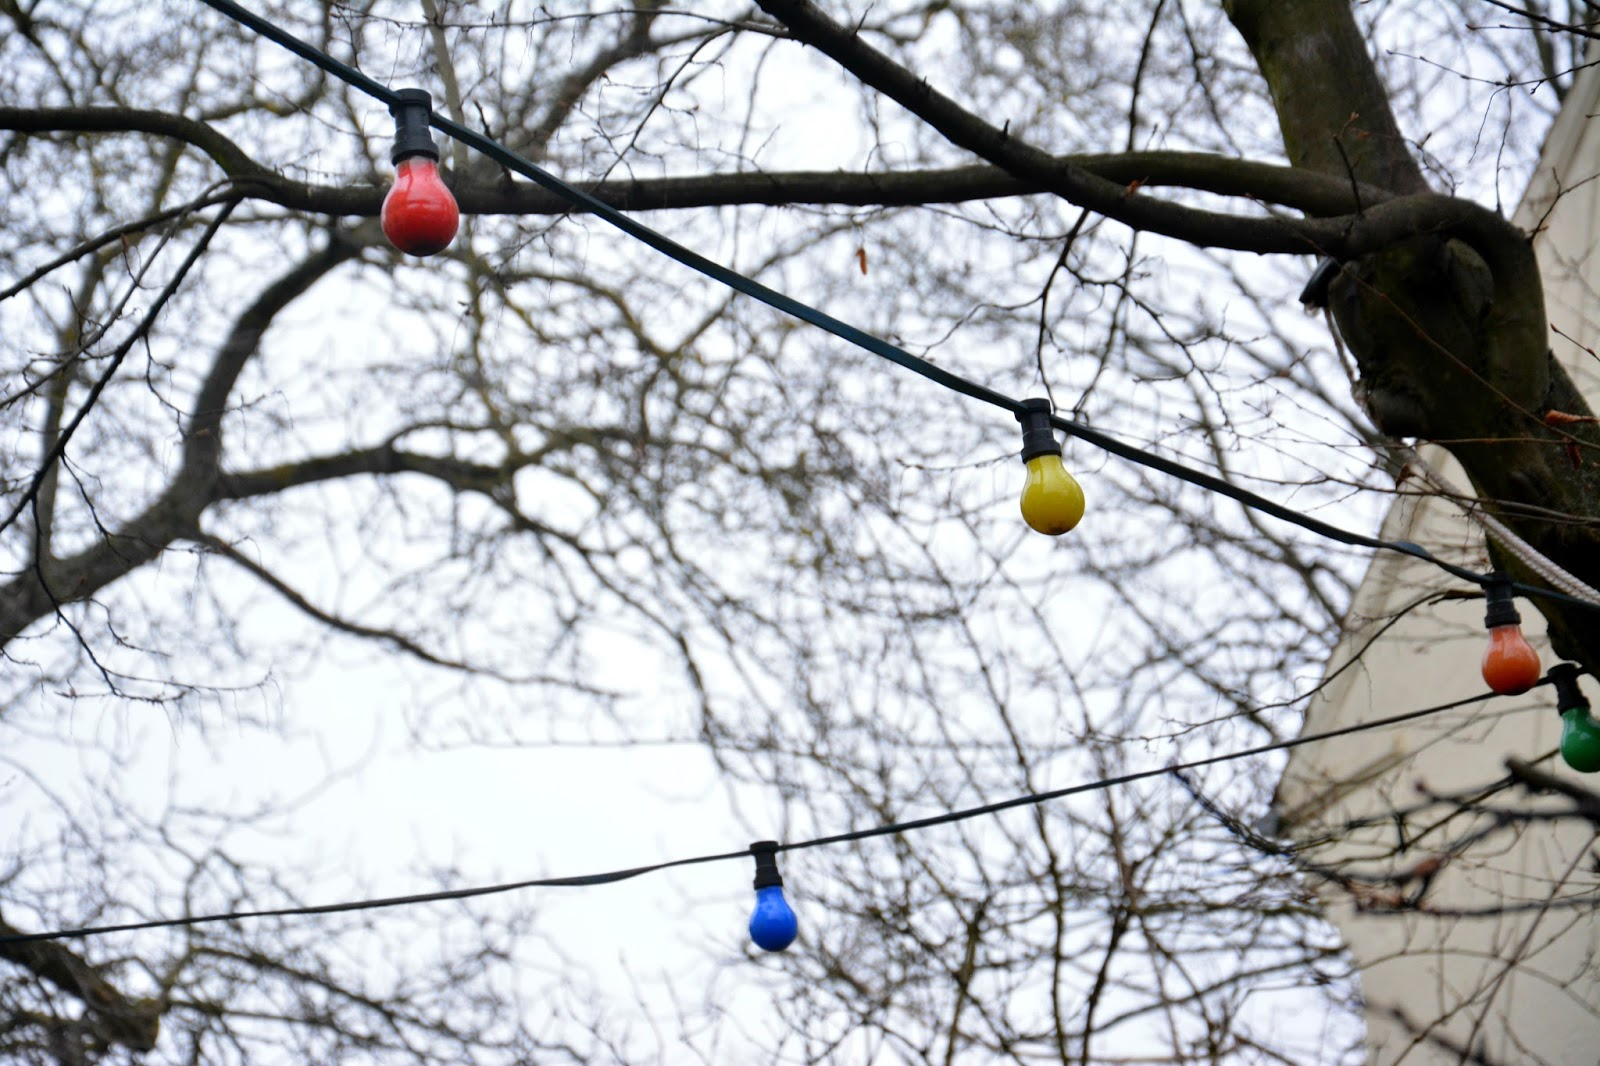 Colourful lightbulbs against branches in the sky